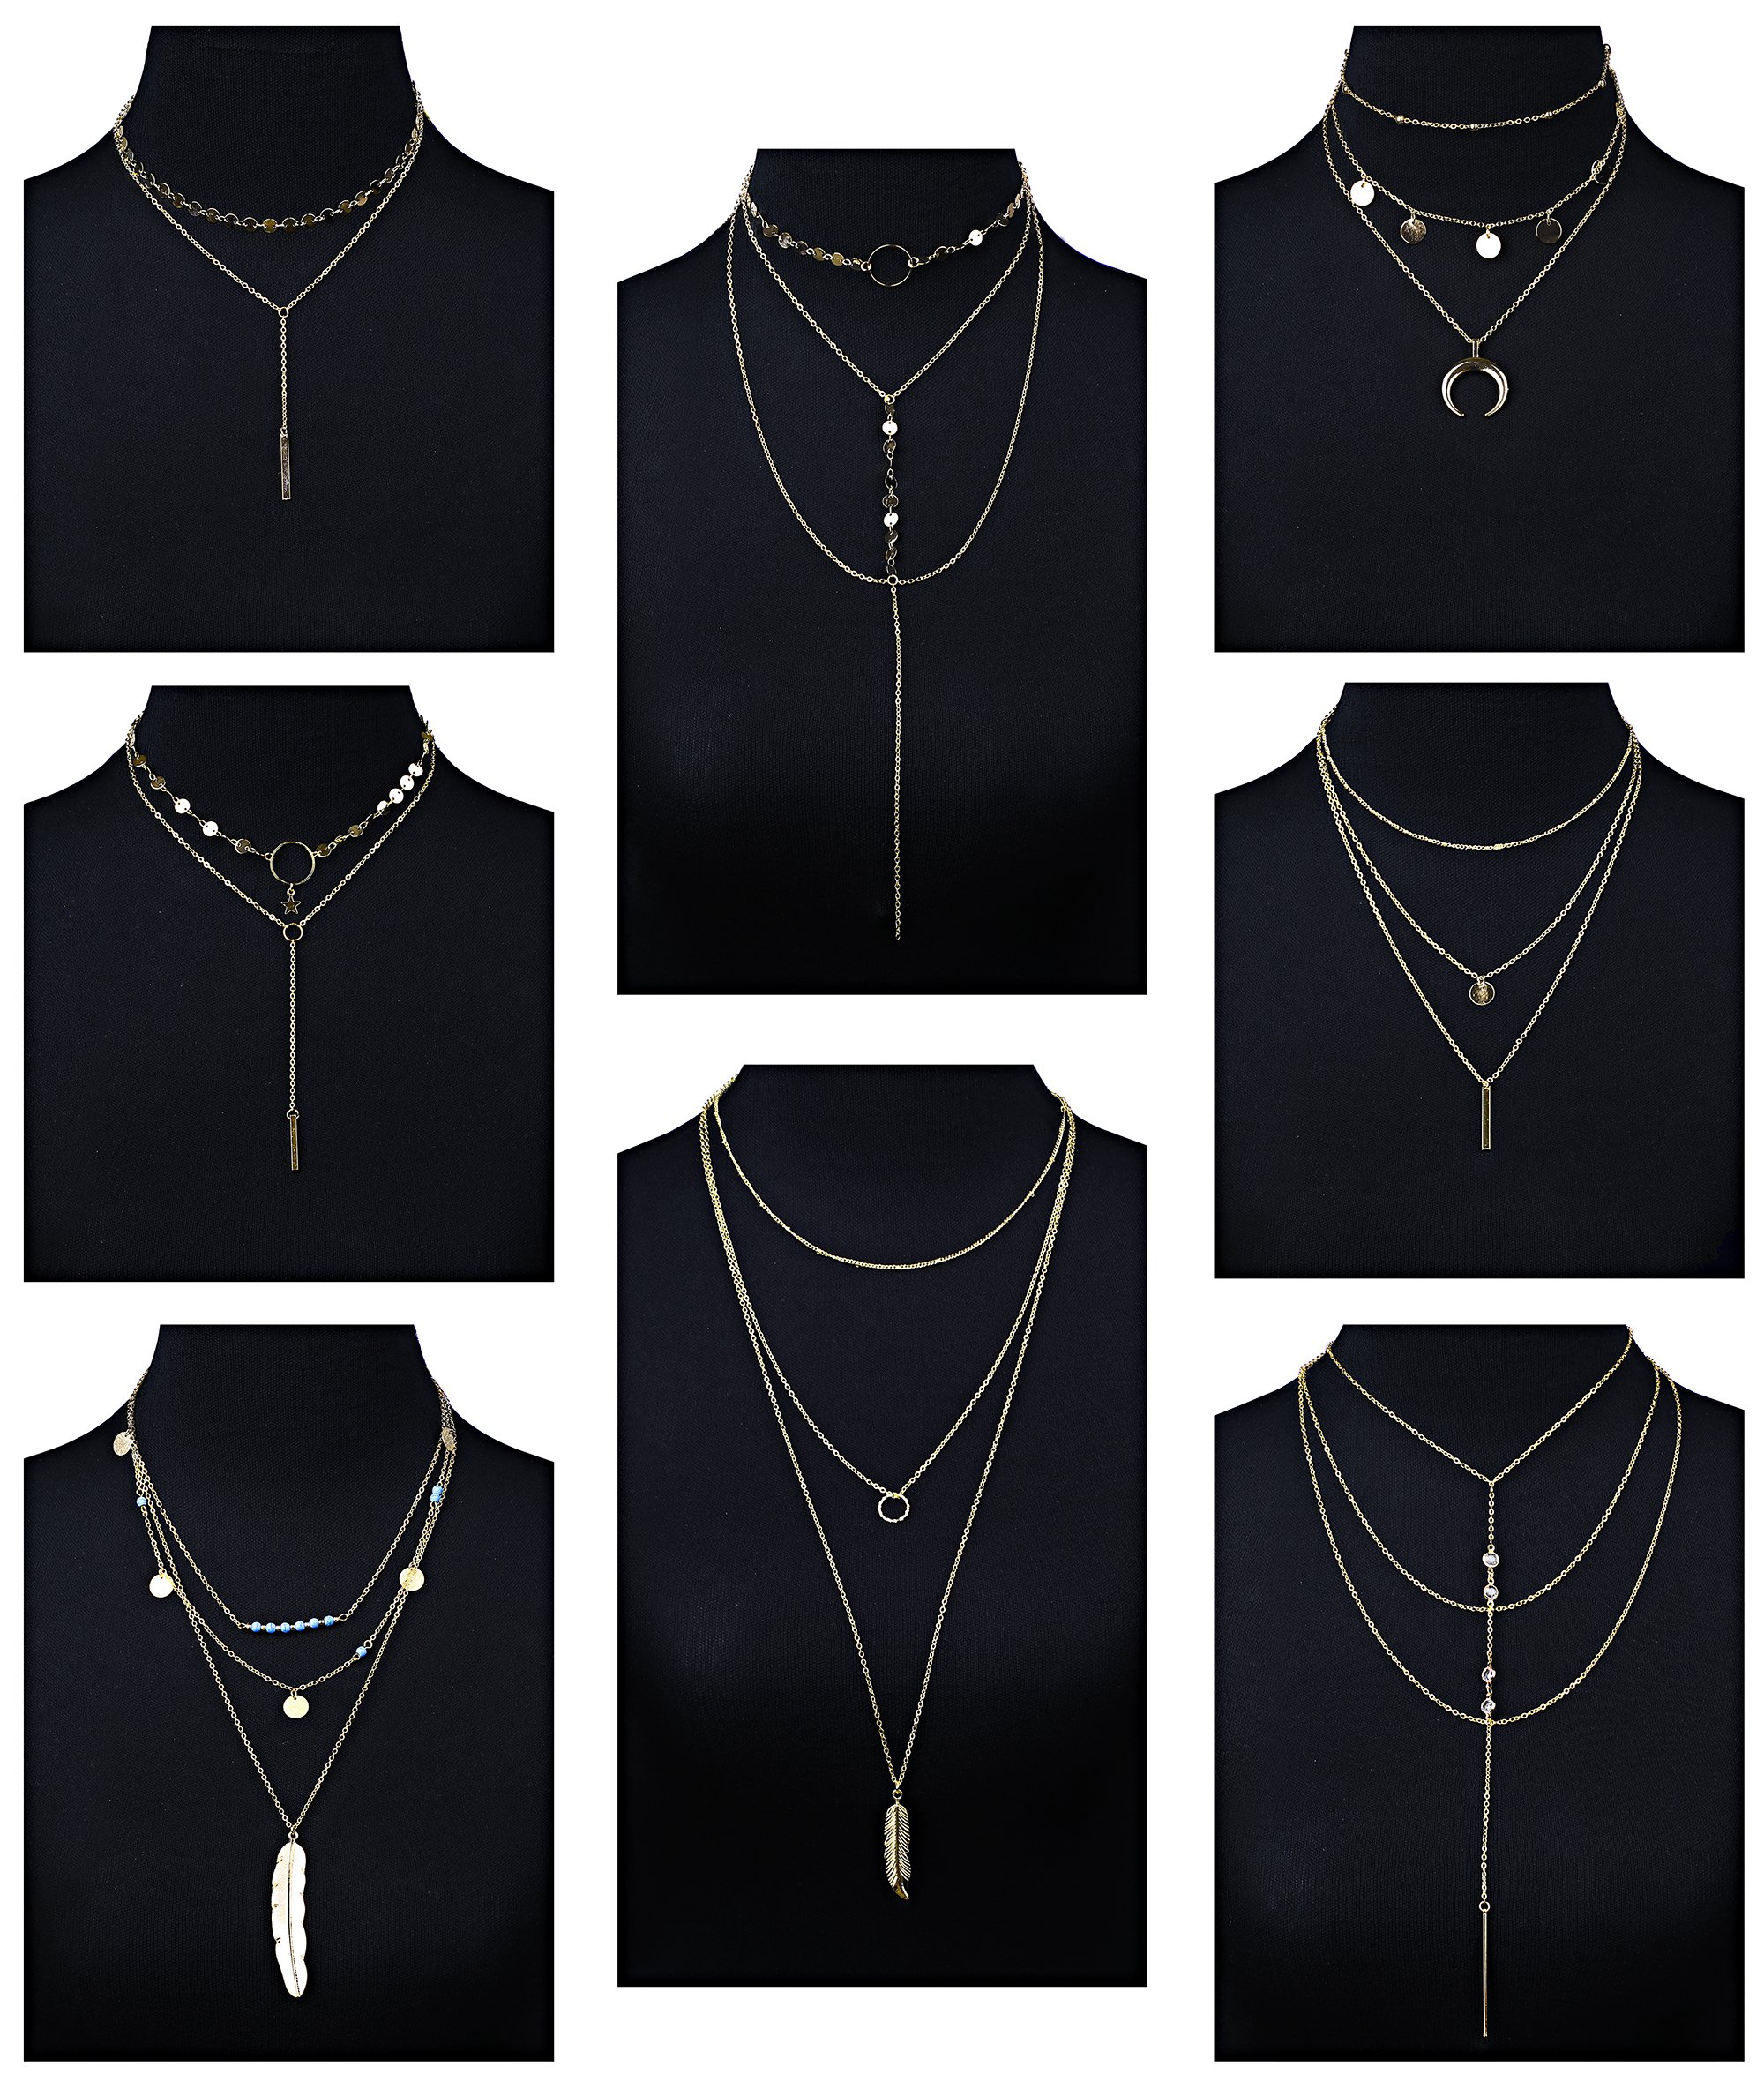 Milacolato 8 Pcs Simple Layered Choker Necklace Sexy Long Chain Pendant Boho Y Necklace For Women Girls